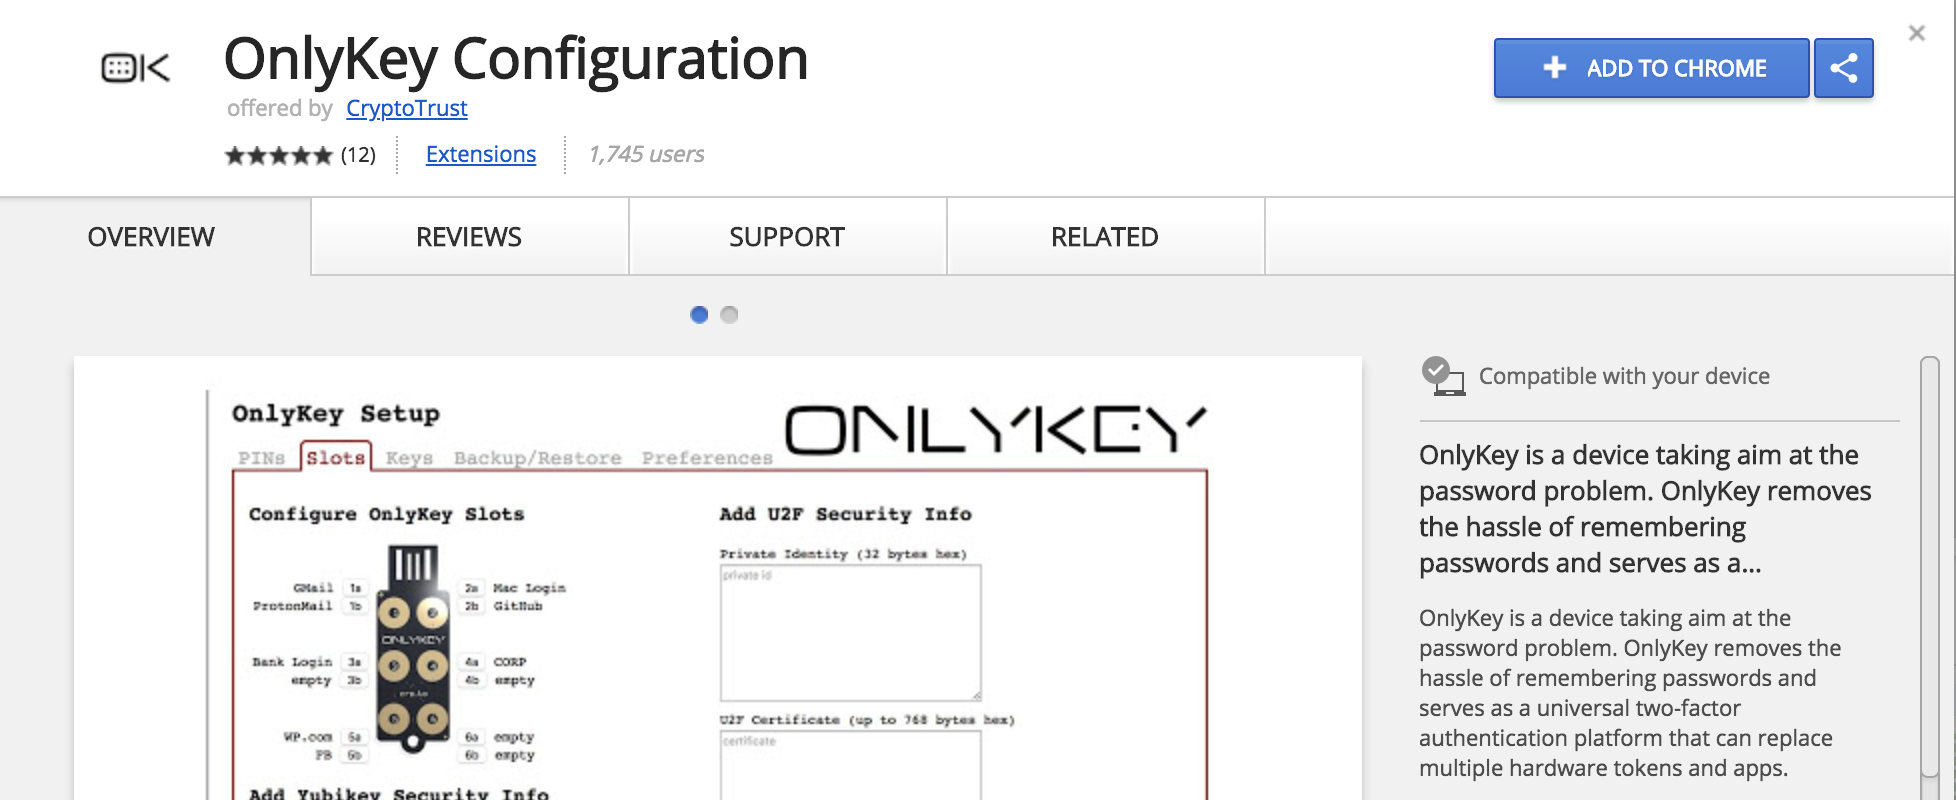 OnlyKey User's Guide | Docs